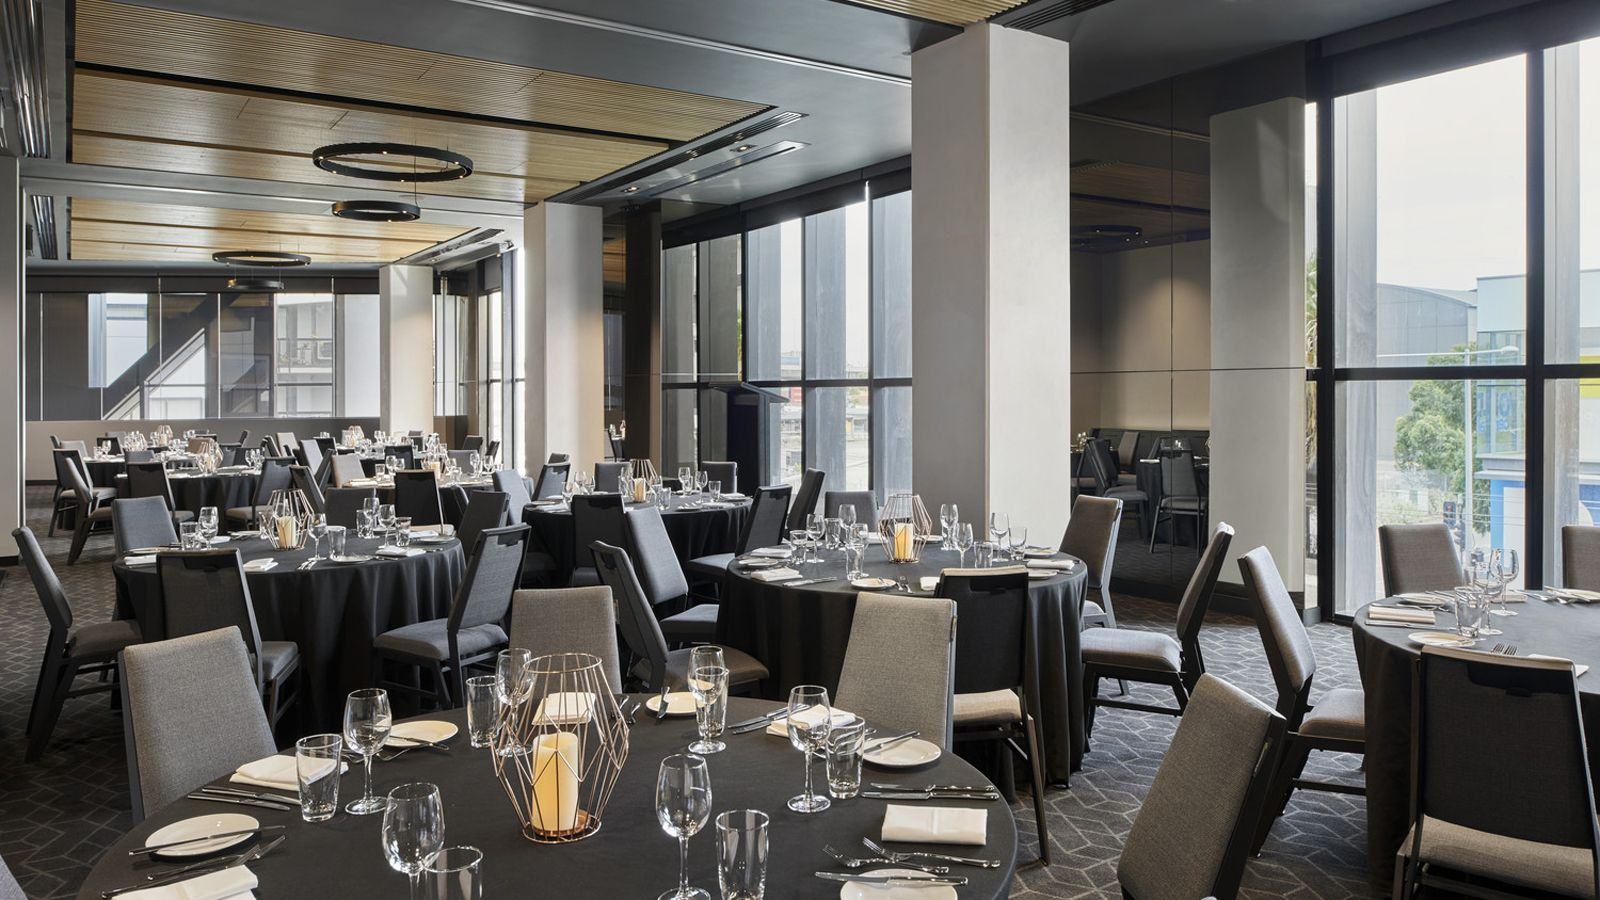 Docklands Meeting Room - Banquet